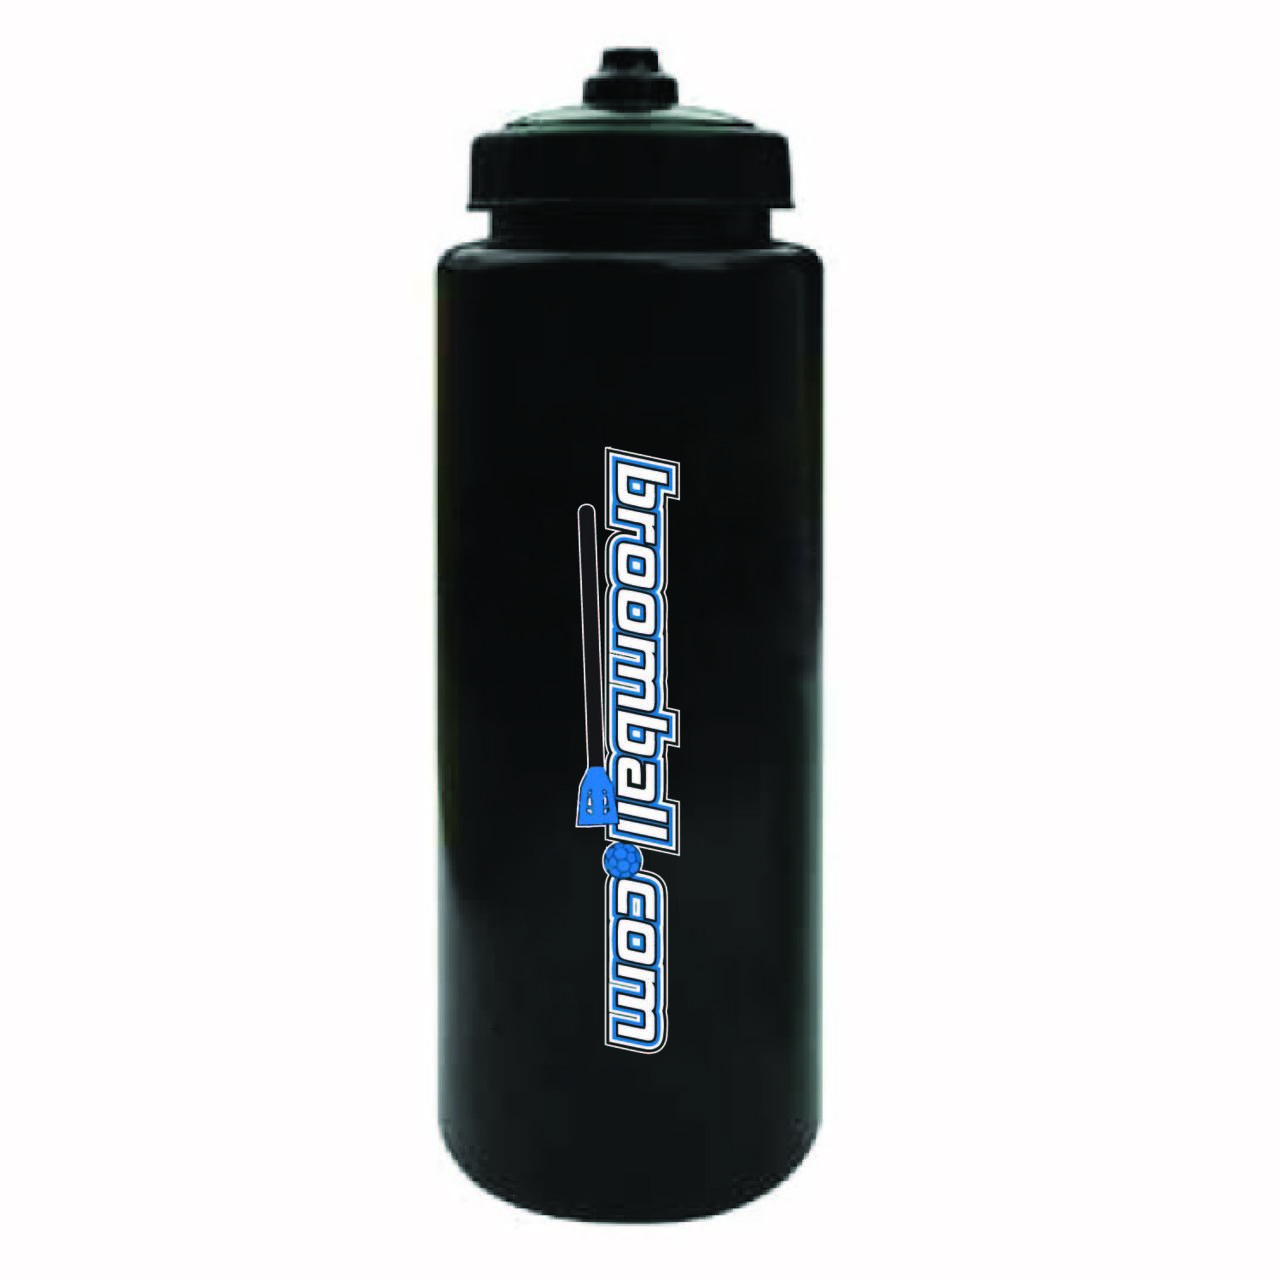 A/&R Sports Water Bottle with Pressure Valve Top Pro-Valve